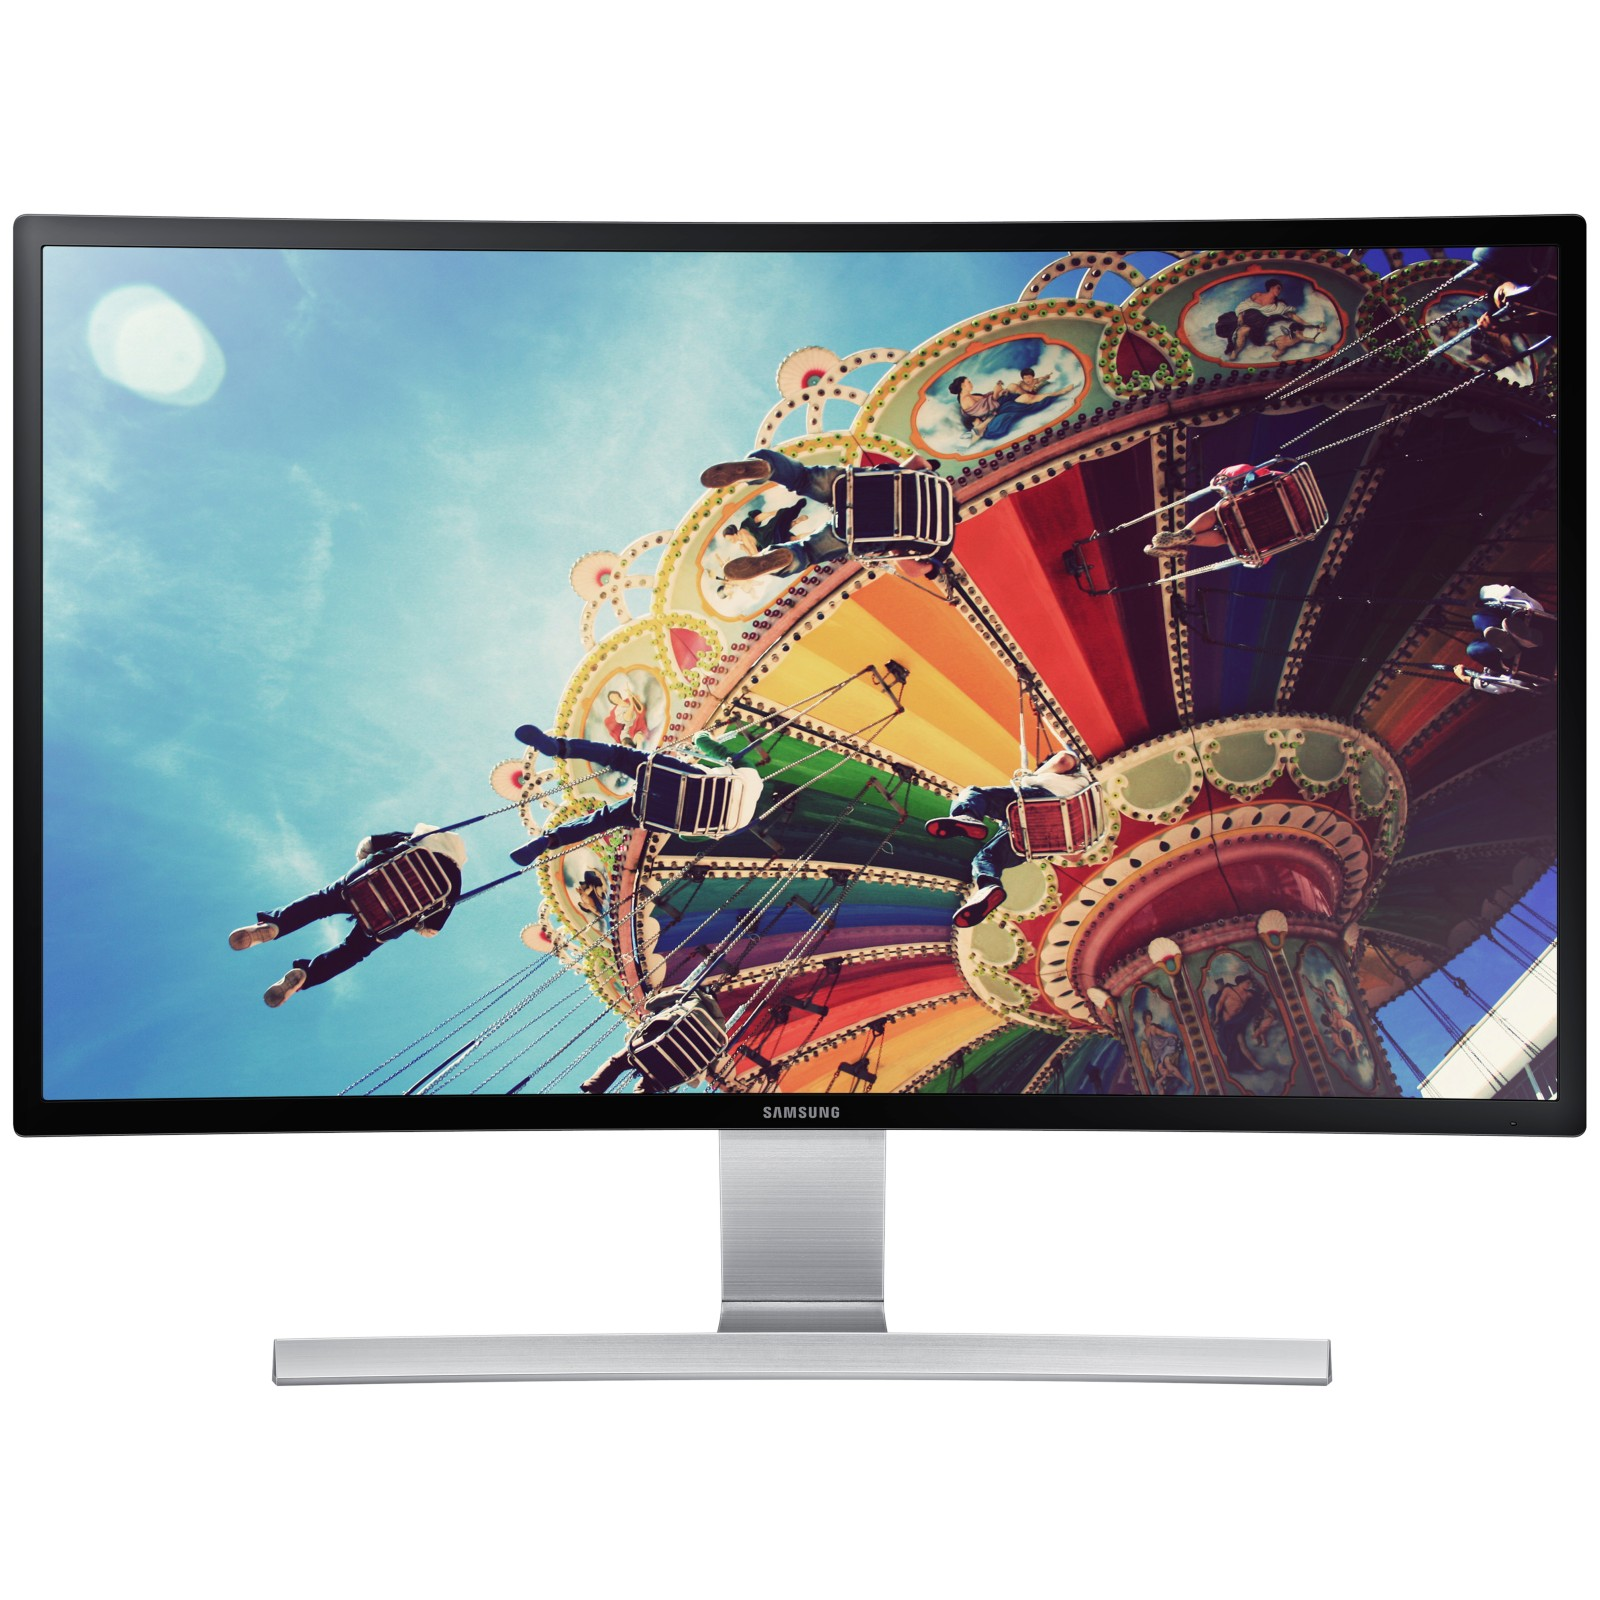 Samsung LS27D590C Curved Full HD LED PC Monitor with built-in speakers